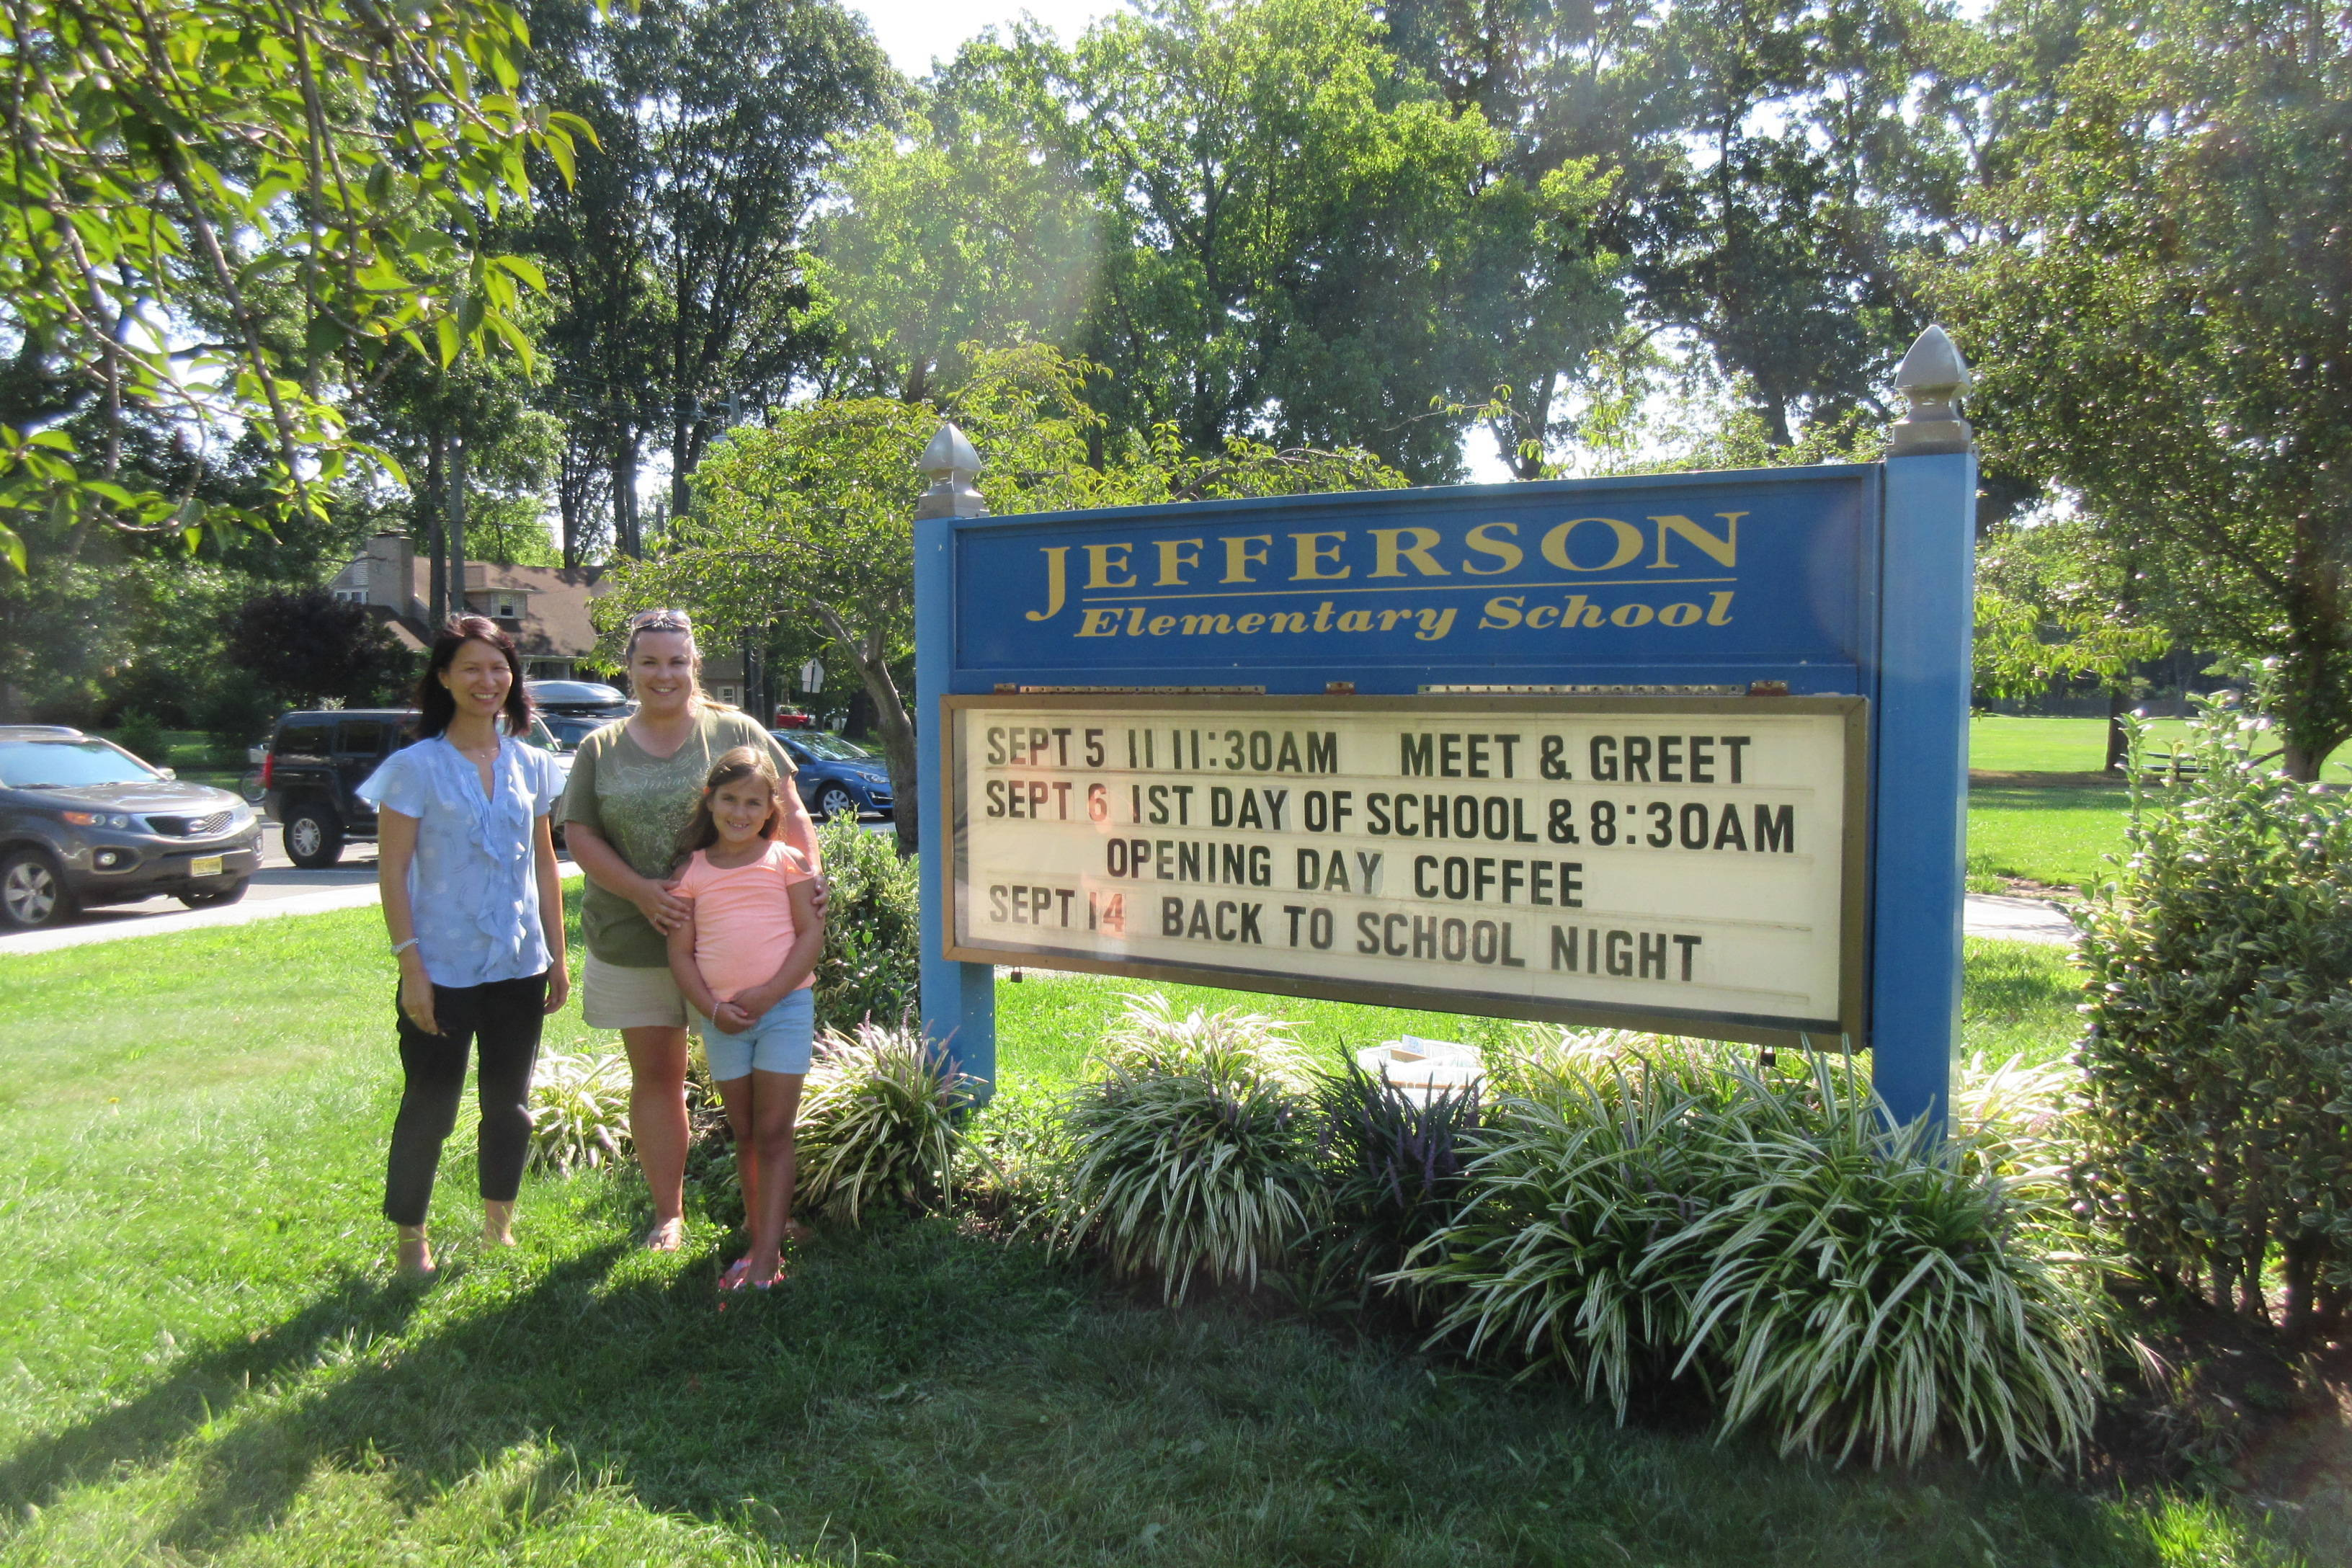 7c509ec4e9556b56b476_455abd6a5bfe3ef3f26e_Jefferson_School_Welcome_sign.JPG